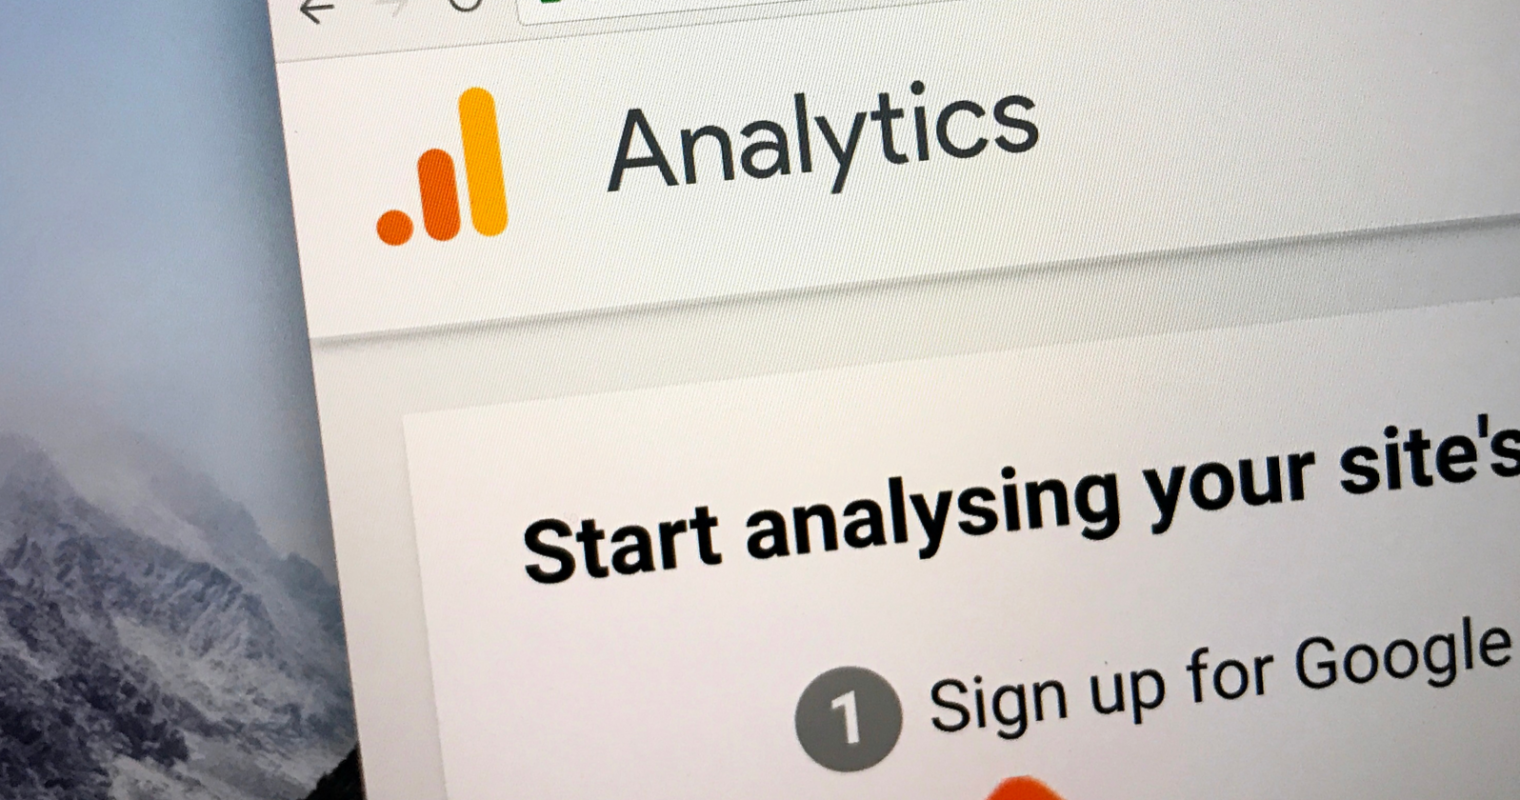 5 Things Google Analytics Can't Tell You & How to Get the Missing Info